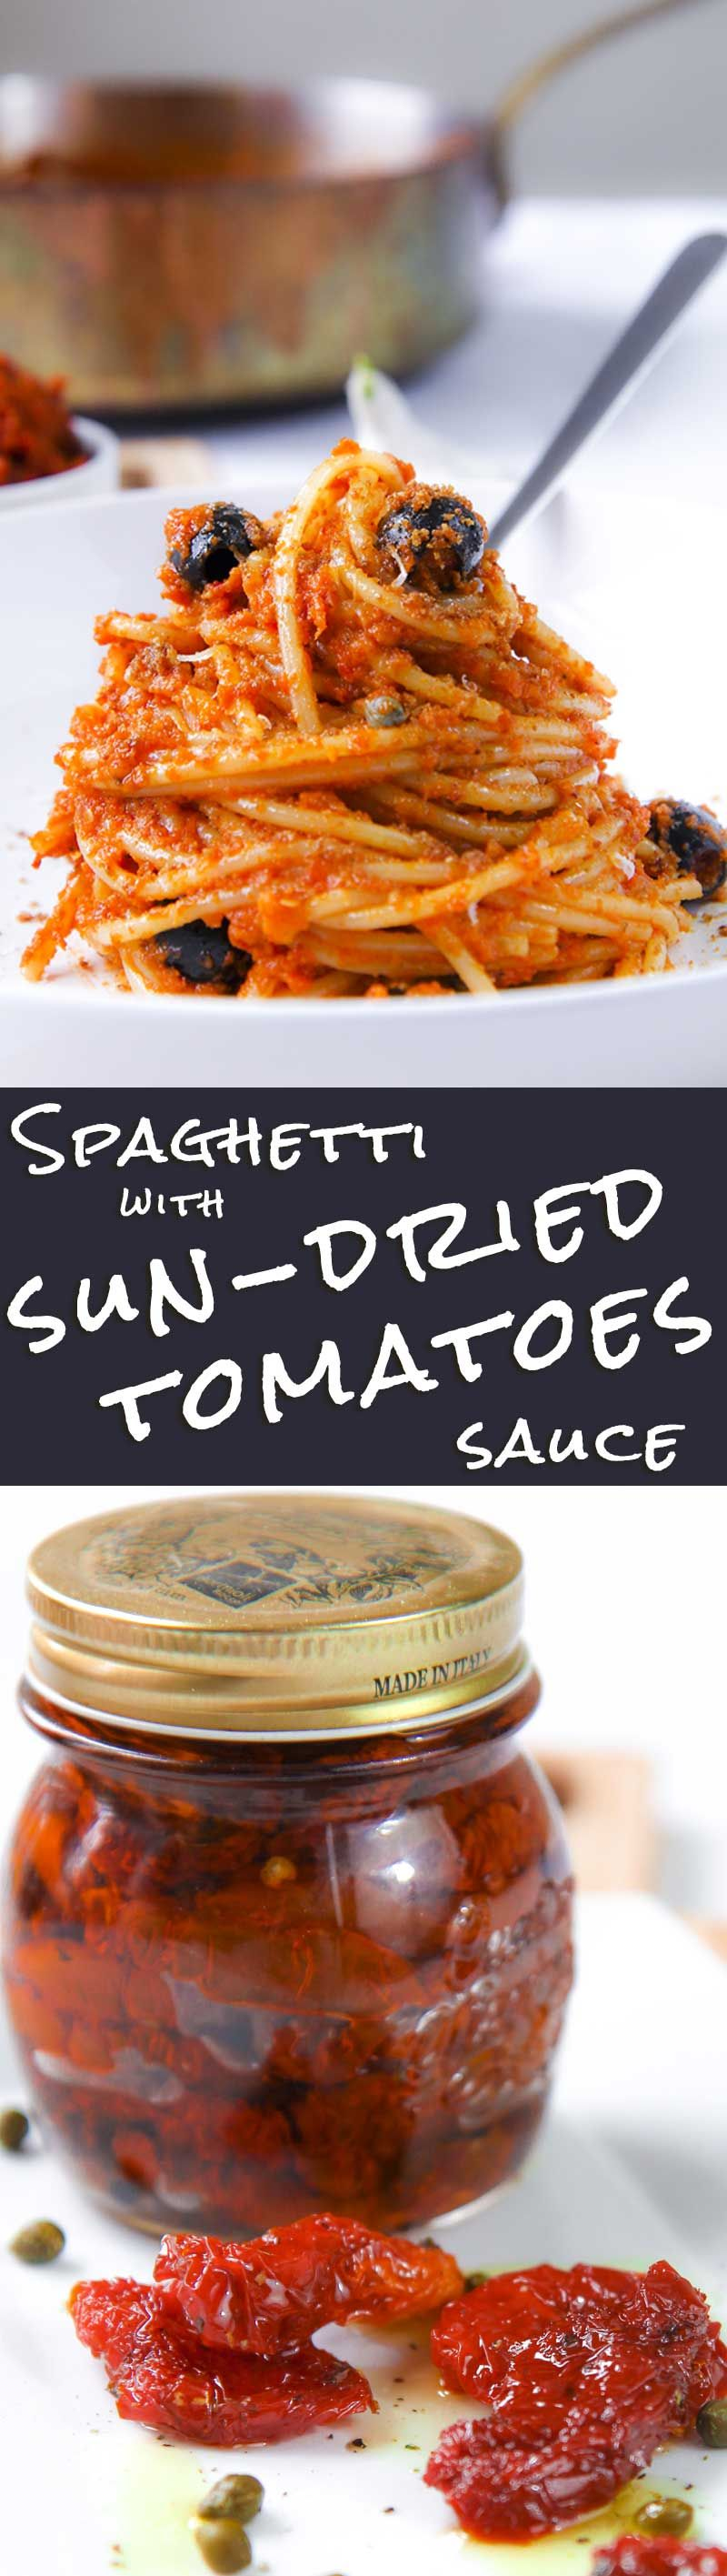 "Spaghetti with sun dried tomatoes sauce pesto - Are you looking for a ""sunny"" recipe easy to prepare in winter as well? The sun dried tomatoes sauce is perfect! This easy recipe is great with spaghetti. Crispy bread crumbs give at this dish an authentic taste of Southern-Italian tradition! - healthy pasta vegetarian dinner meal"